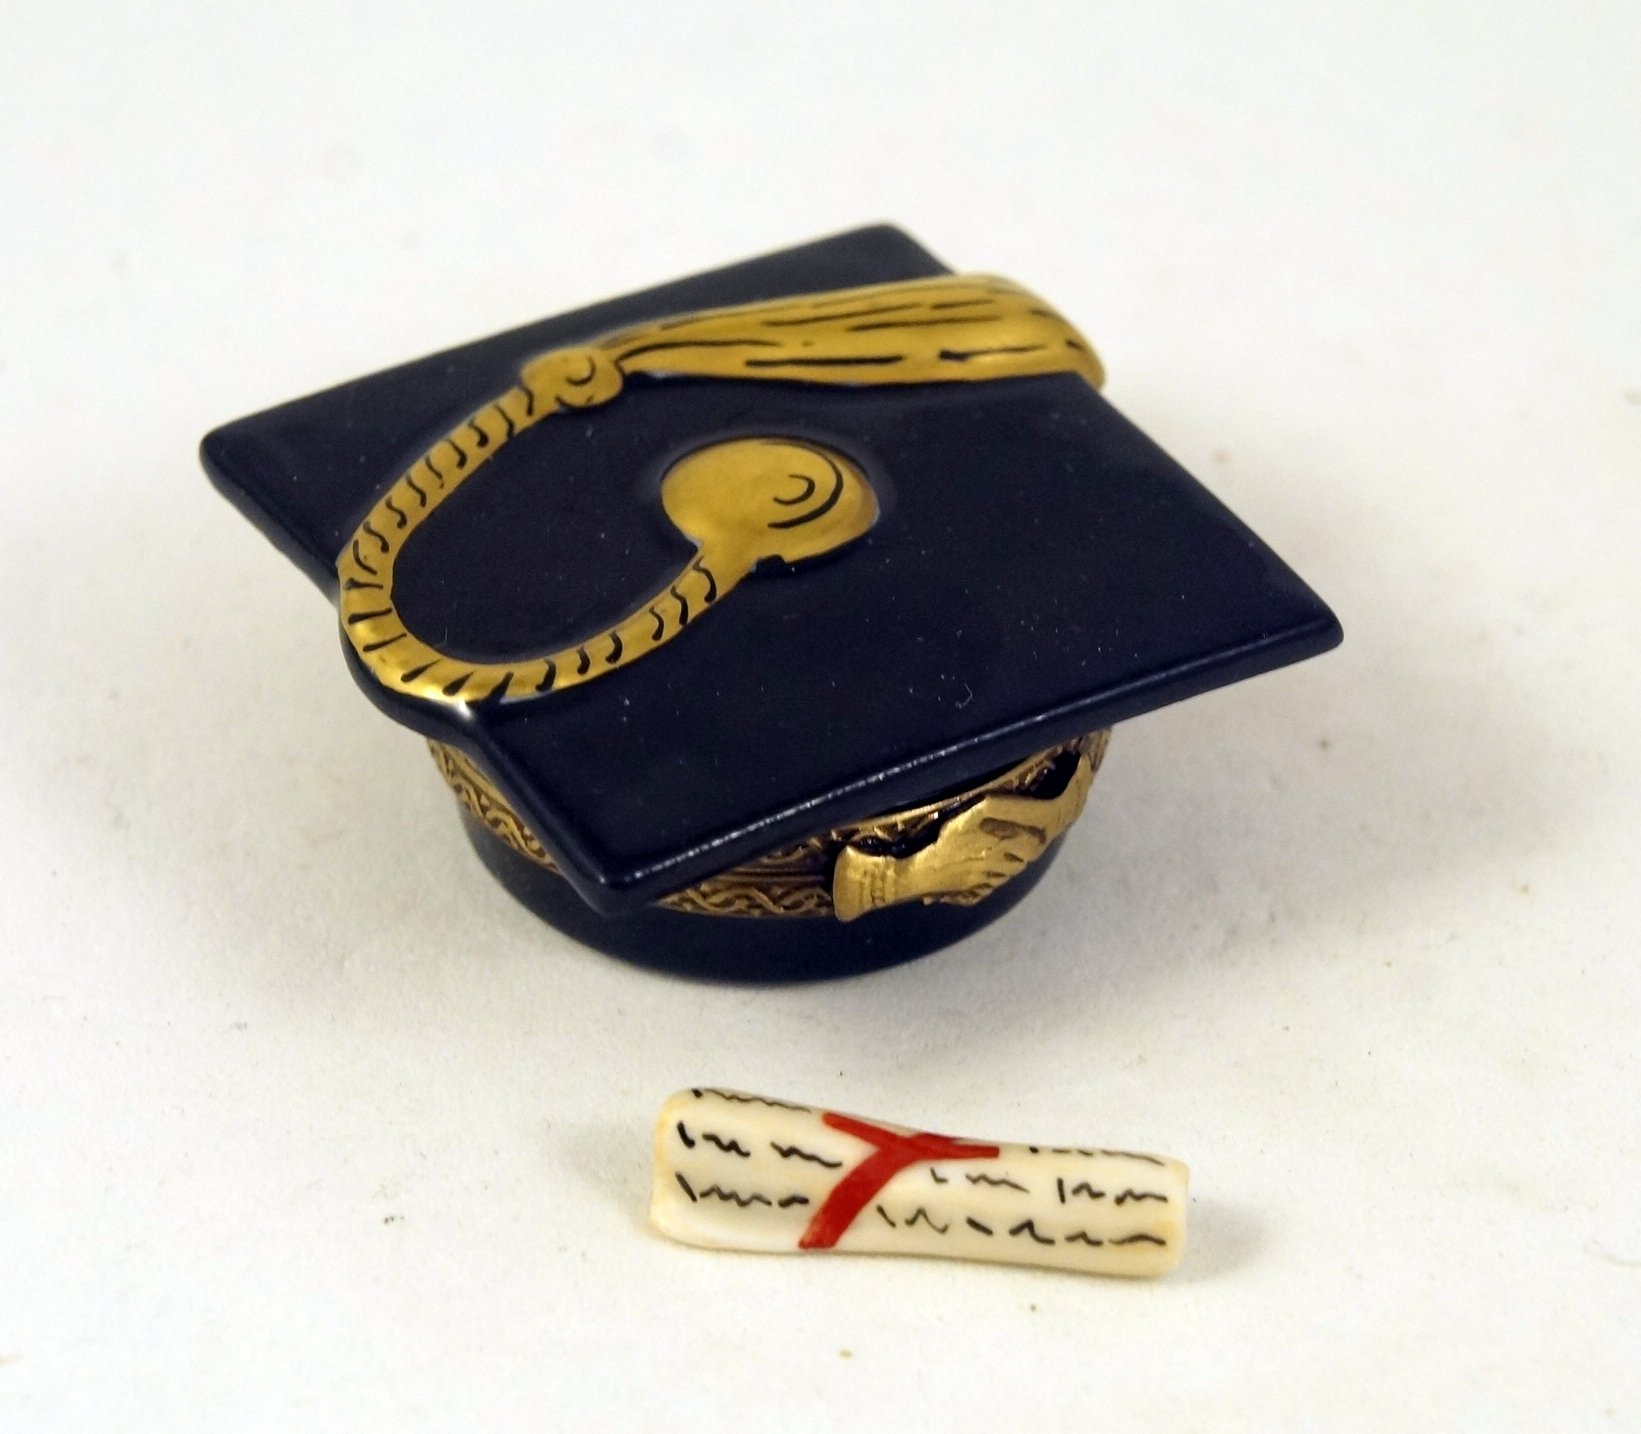 Authentic French Porcelain Hand Painted Limoges Box Graduation Cap with Porcelain Removable Diploma by Authentic Limoges Boxes (Image #1)